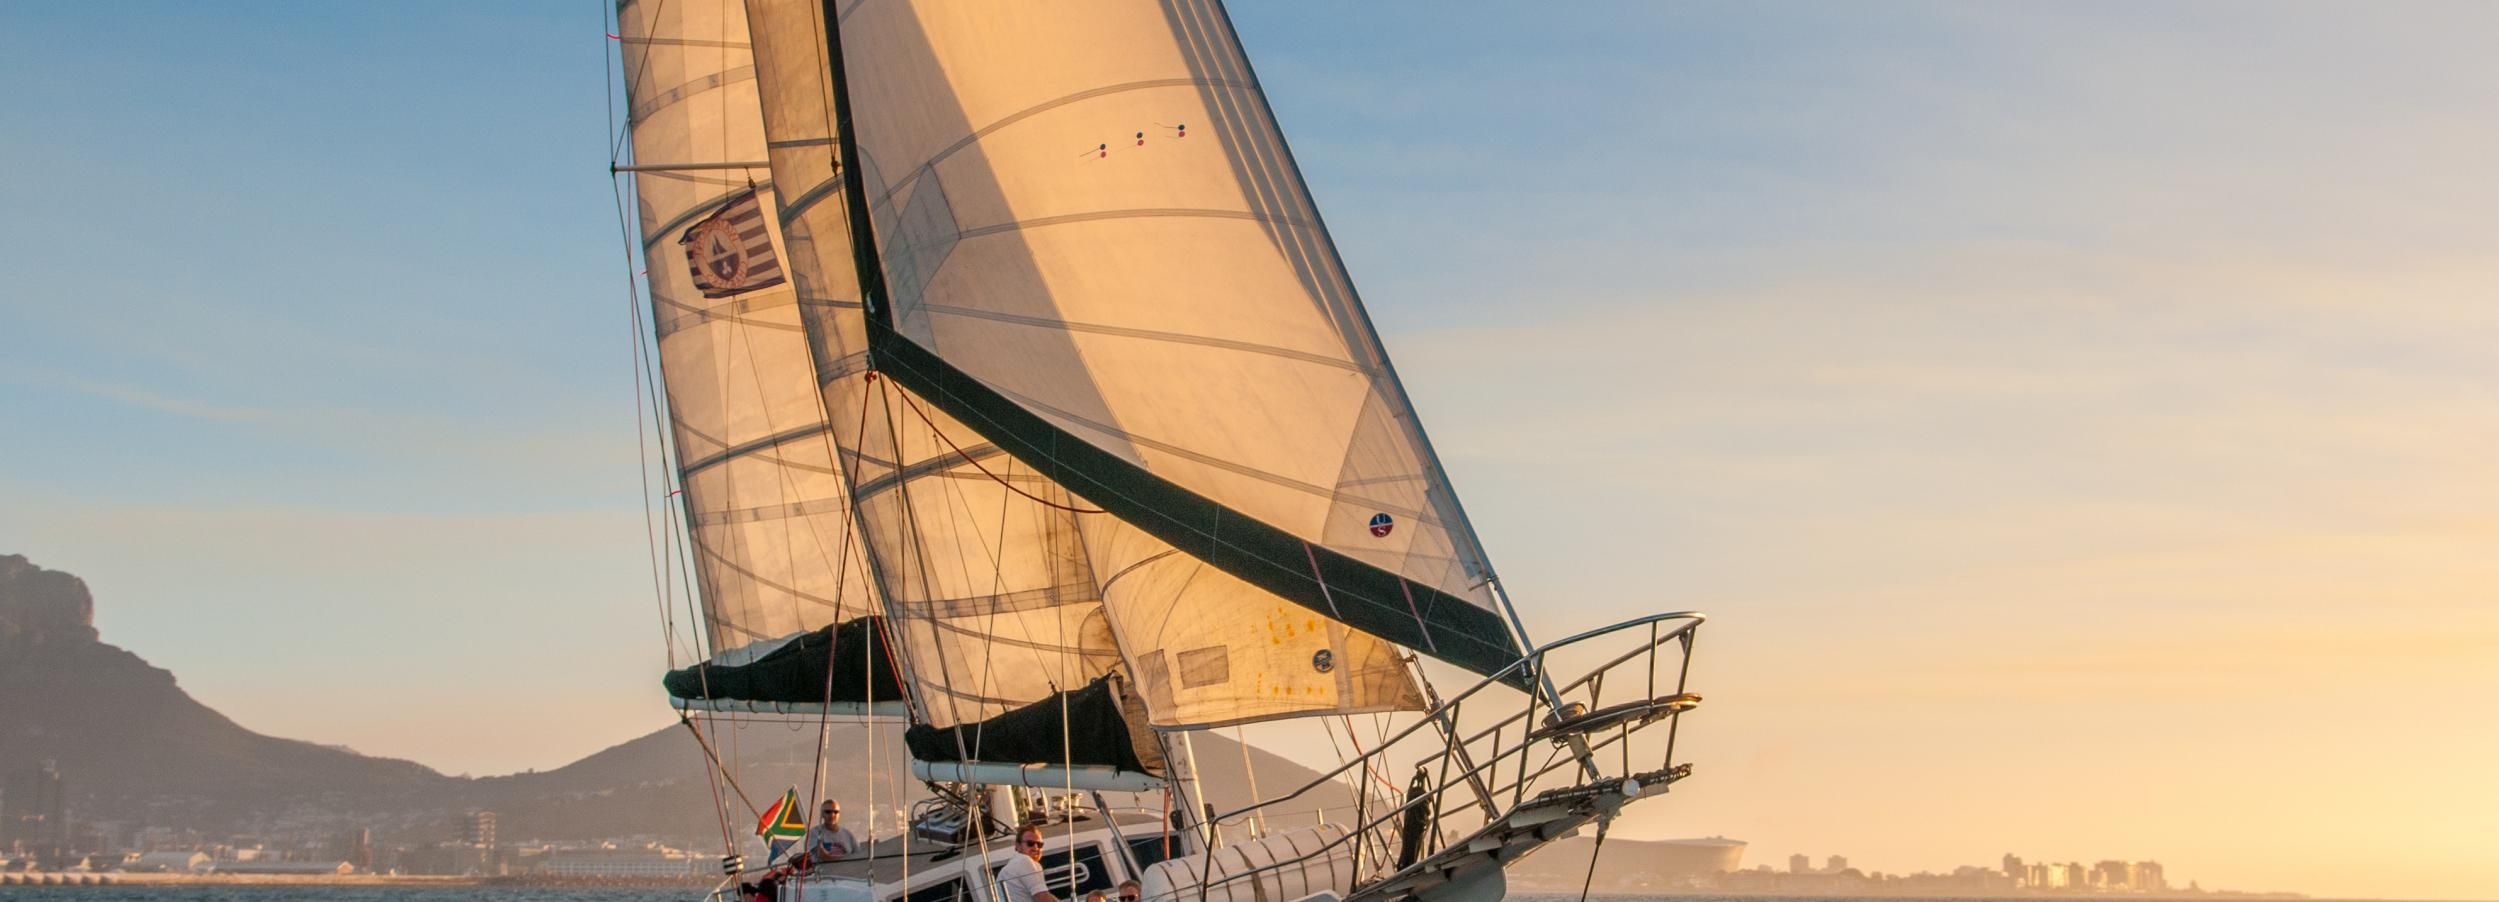 Cape Town: Table Bay 1-Hour Cruise on the Schooner Esperance